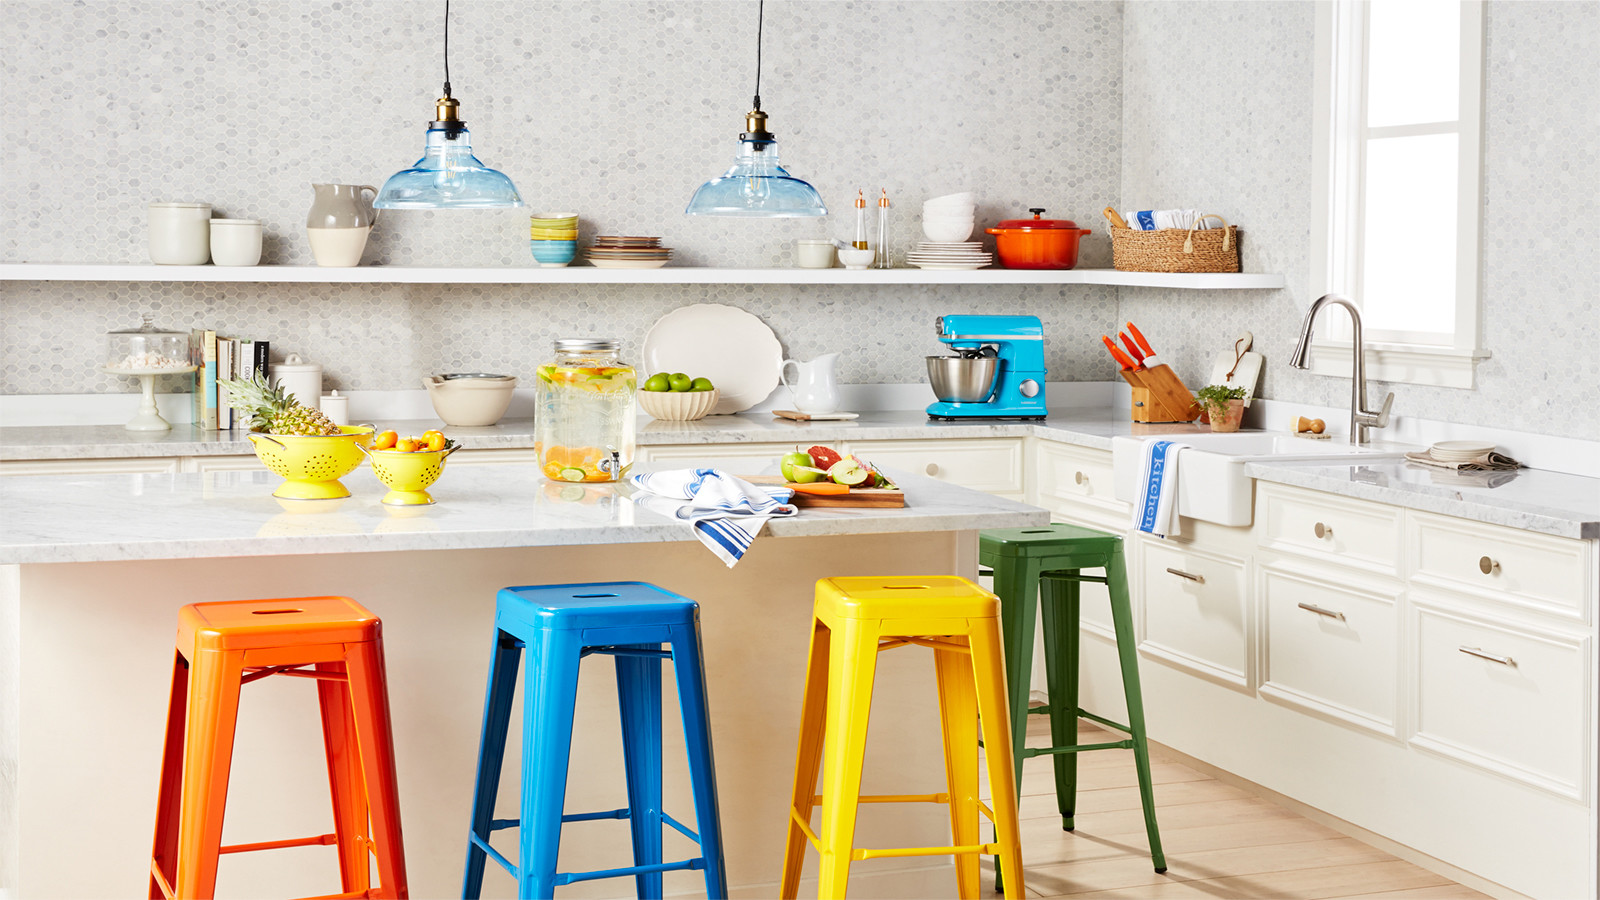 This undated artist rending provided by Walmart shows its colorful kitchen, which is part of Walmart's new online home shopping experience that will let shoppers discover items based on their style.